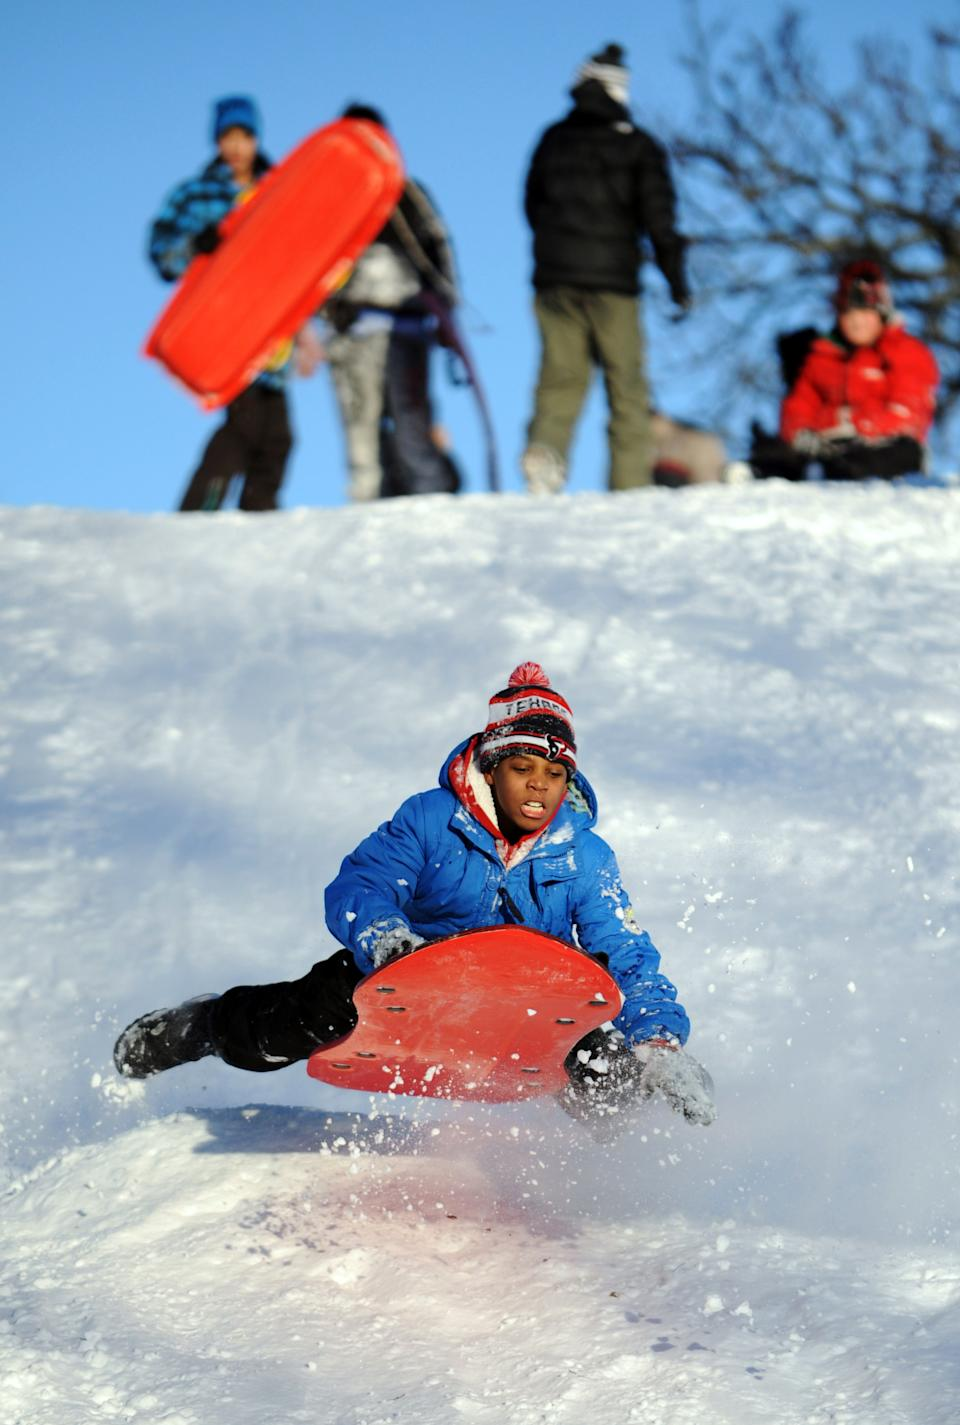 A.J. Cooper sleds on a hill in Cummings Park, Saturday, Feb. 9, 2013, in Stamford, Conn. (AP Photo/The Stamford Advocate, Lindsay Perry)  MANDATORY CREDIT; MAGS OUT